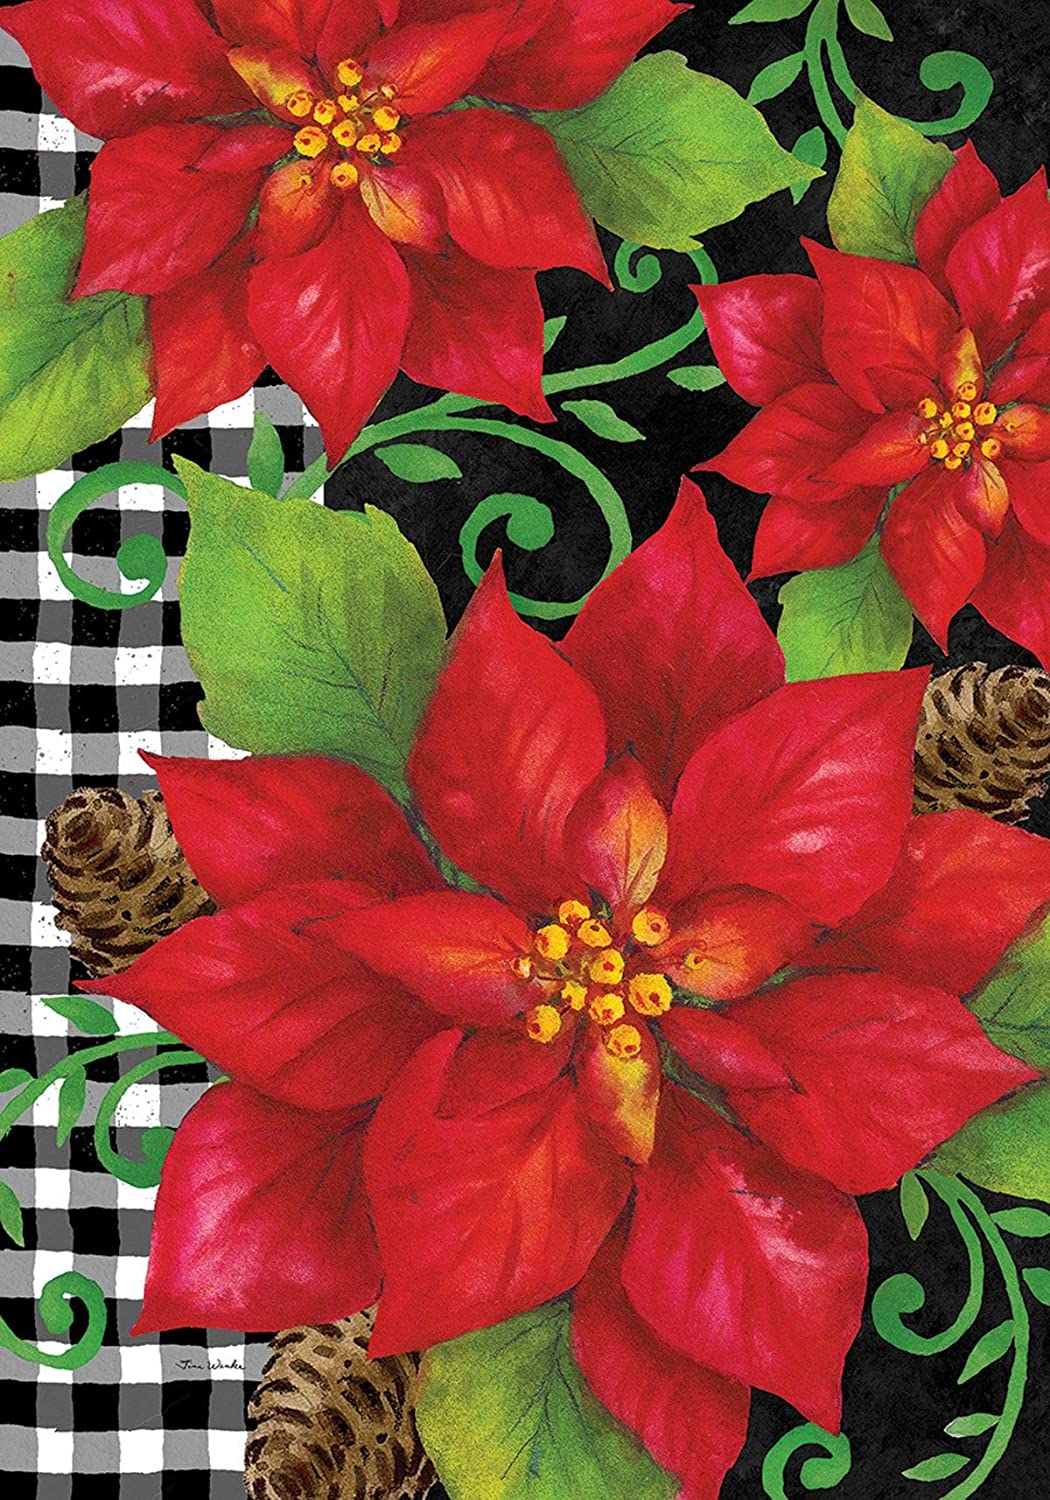 Custom Decor Poinsettia Check - Standard Size, Decorative Double Sided, Licensed and Copyrighted Flag - Printed in The USA Inc. - 28 Inch X 40 Inch Approx. Size